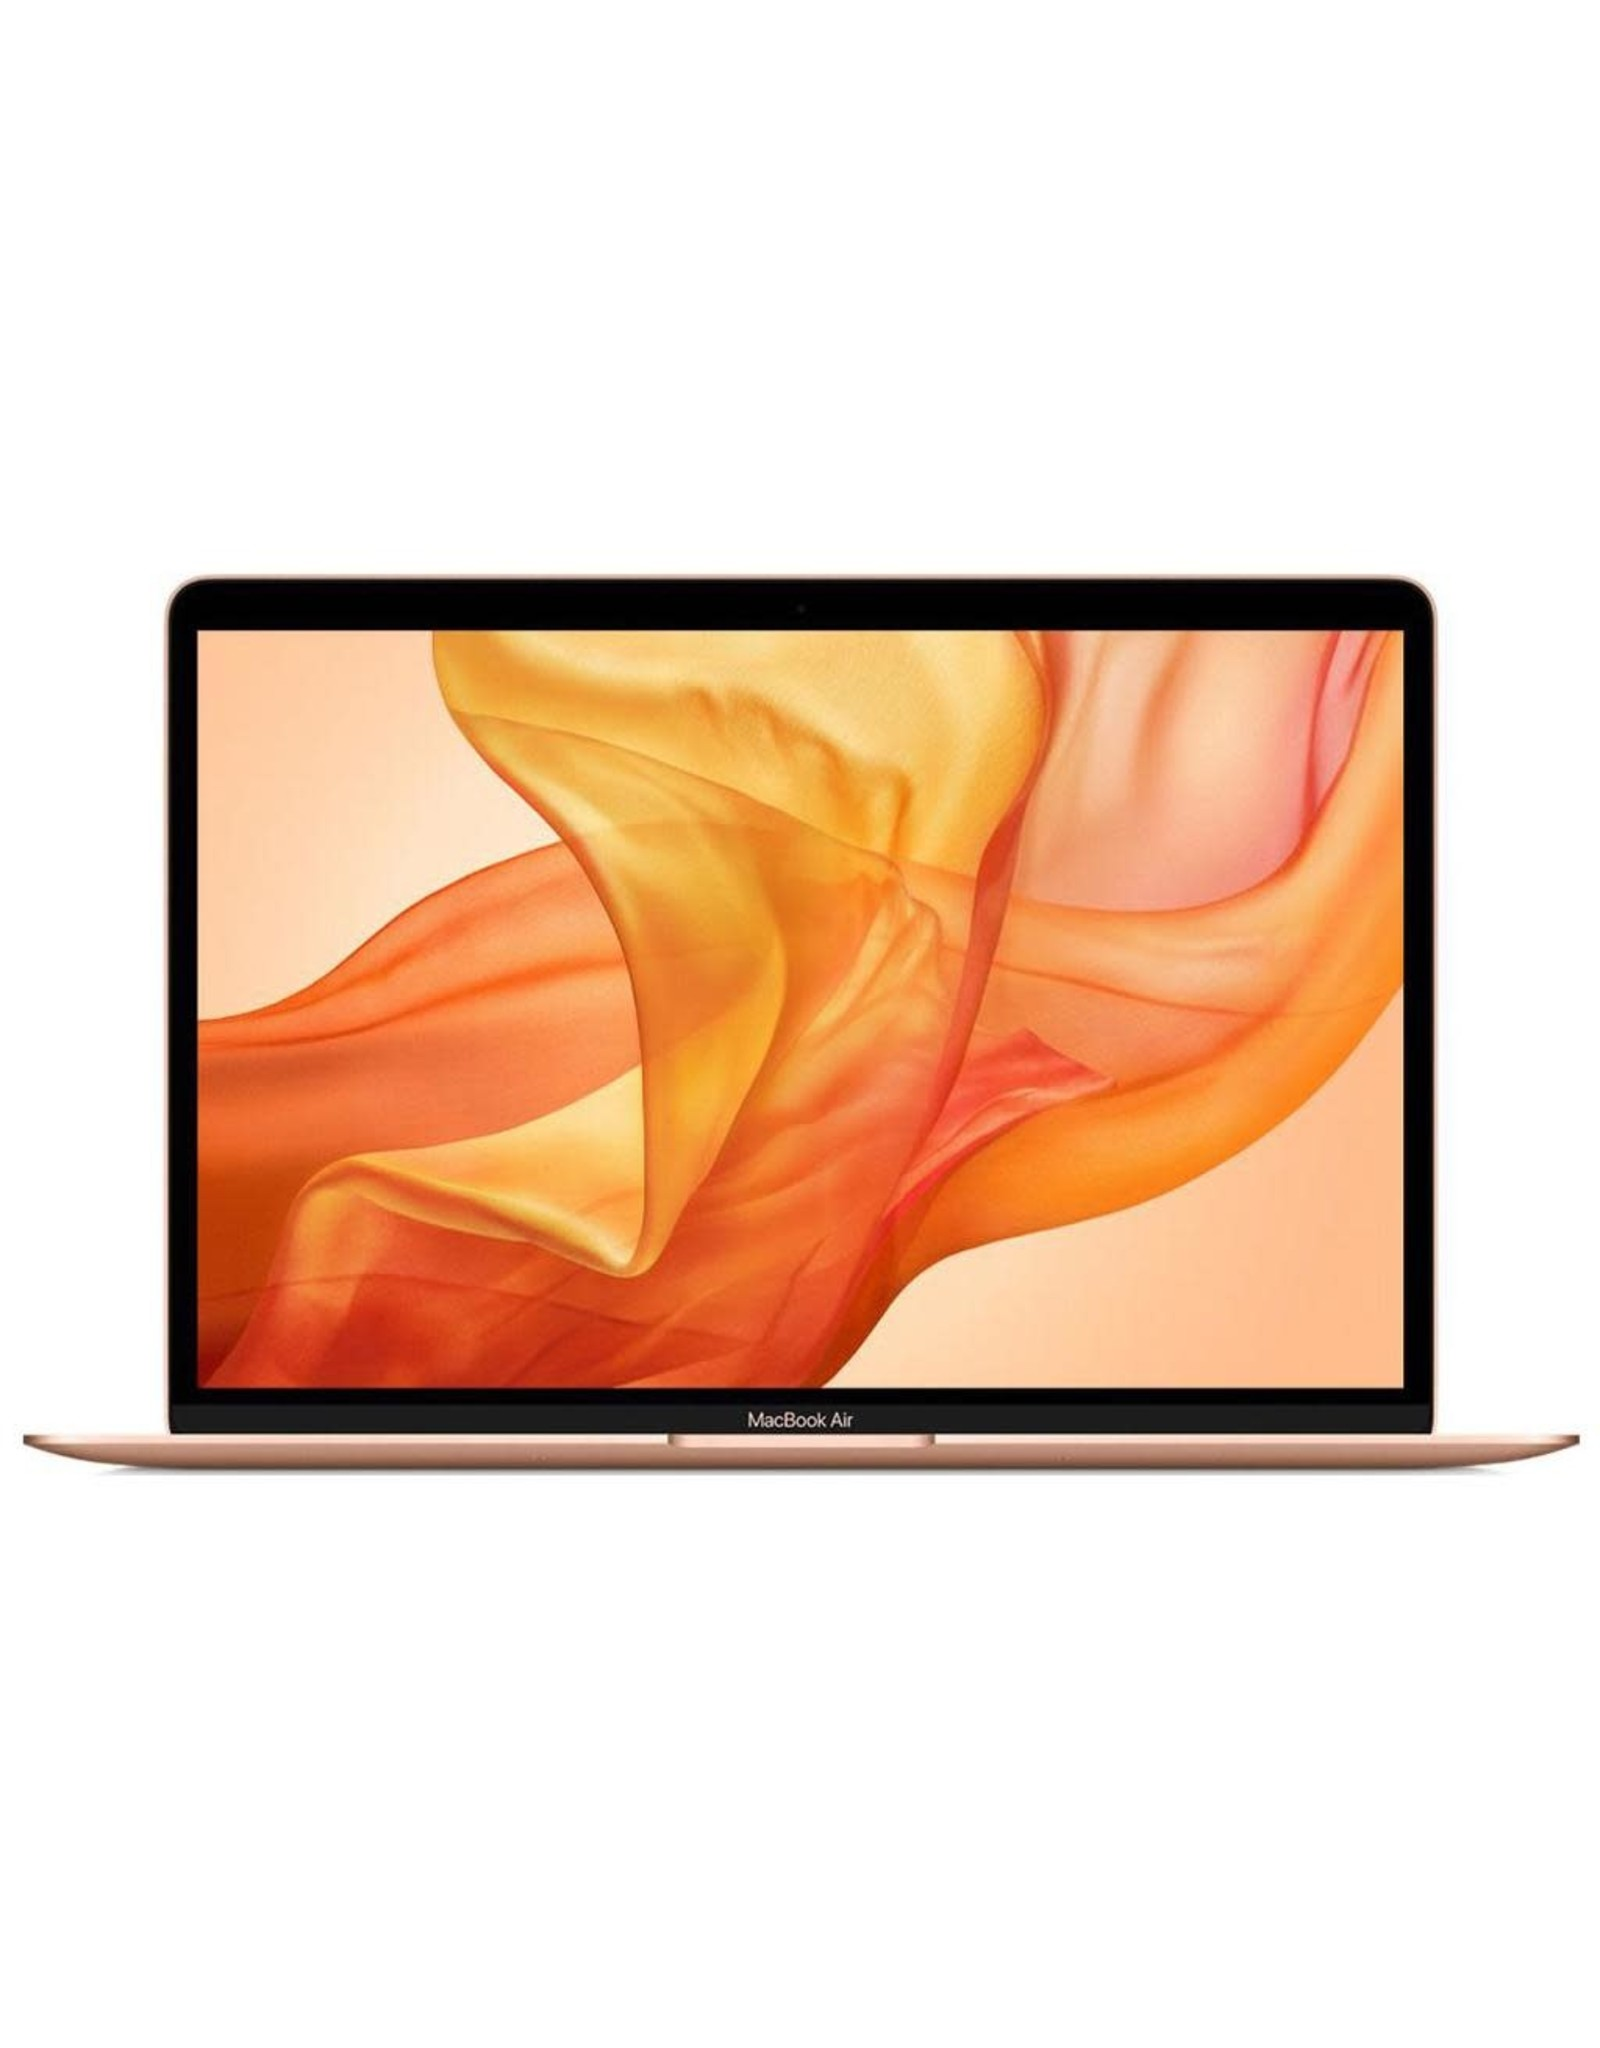 Apple Superseded - 13-inch MacBook Air 512GB 1.1GHz dual-core  i3